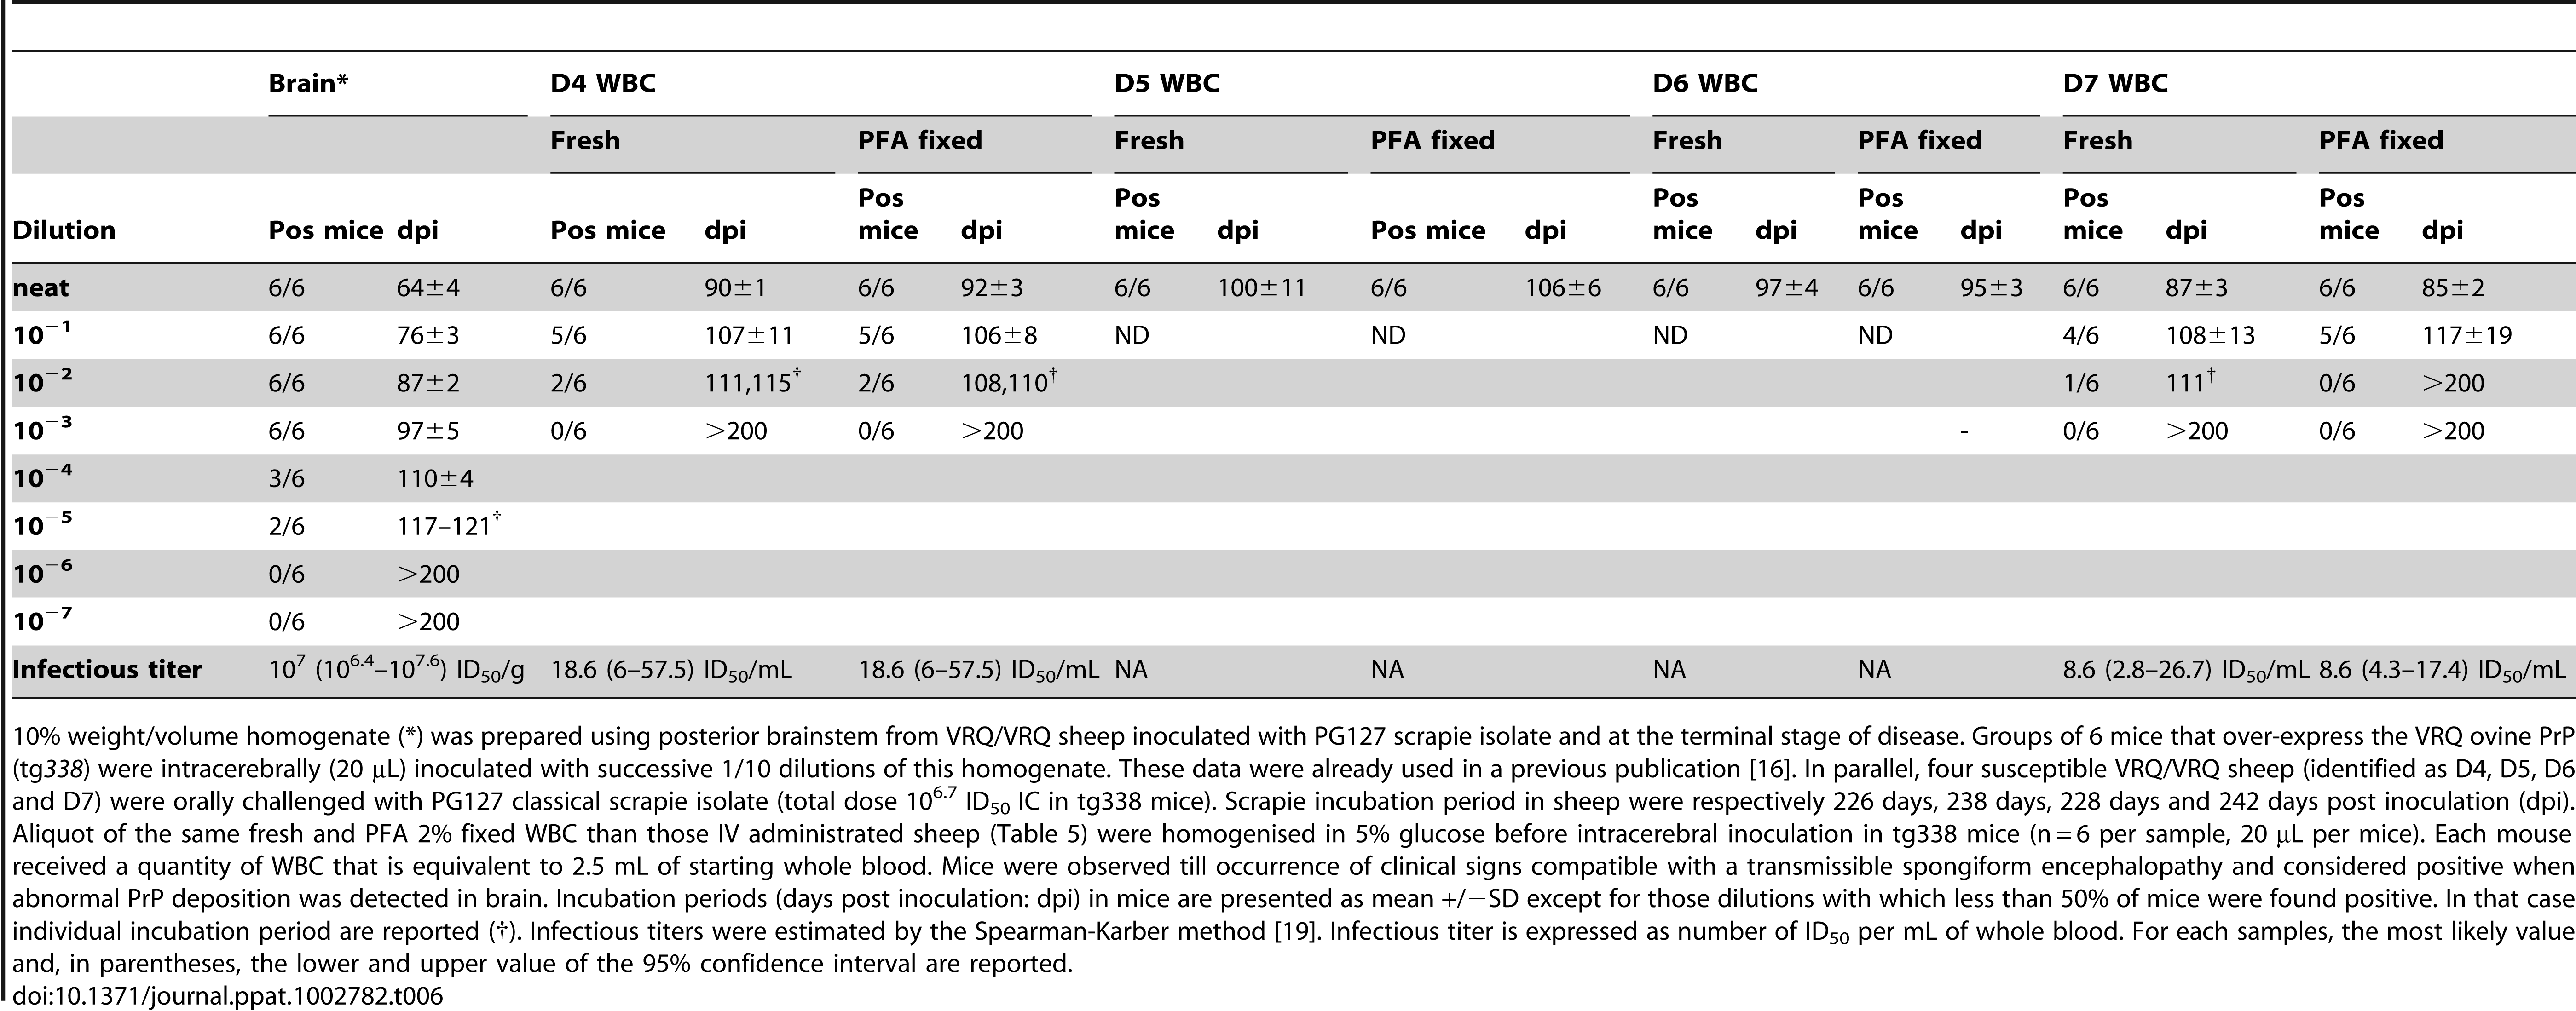 End-point titration in tg338 mice of a 10% brain homogenate and white blood cells samples, collected in VRQ/VRQ sheep orally inoculated with PG127 scrapie.